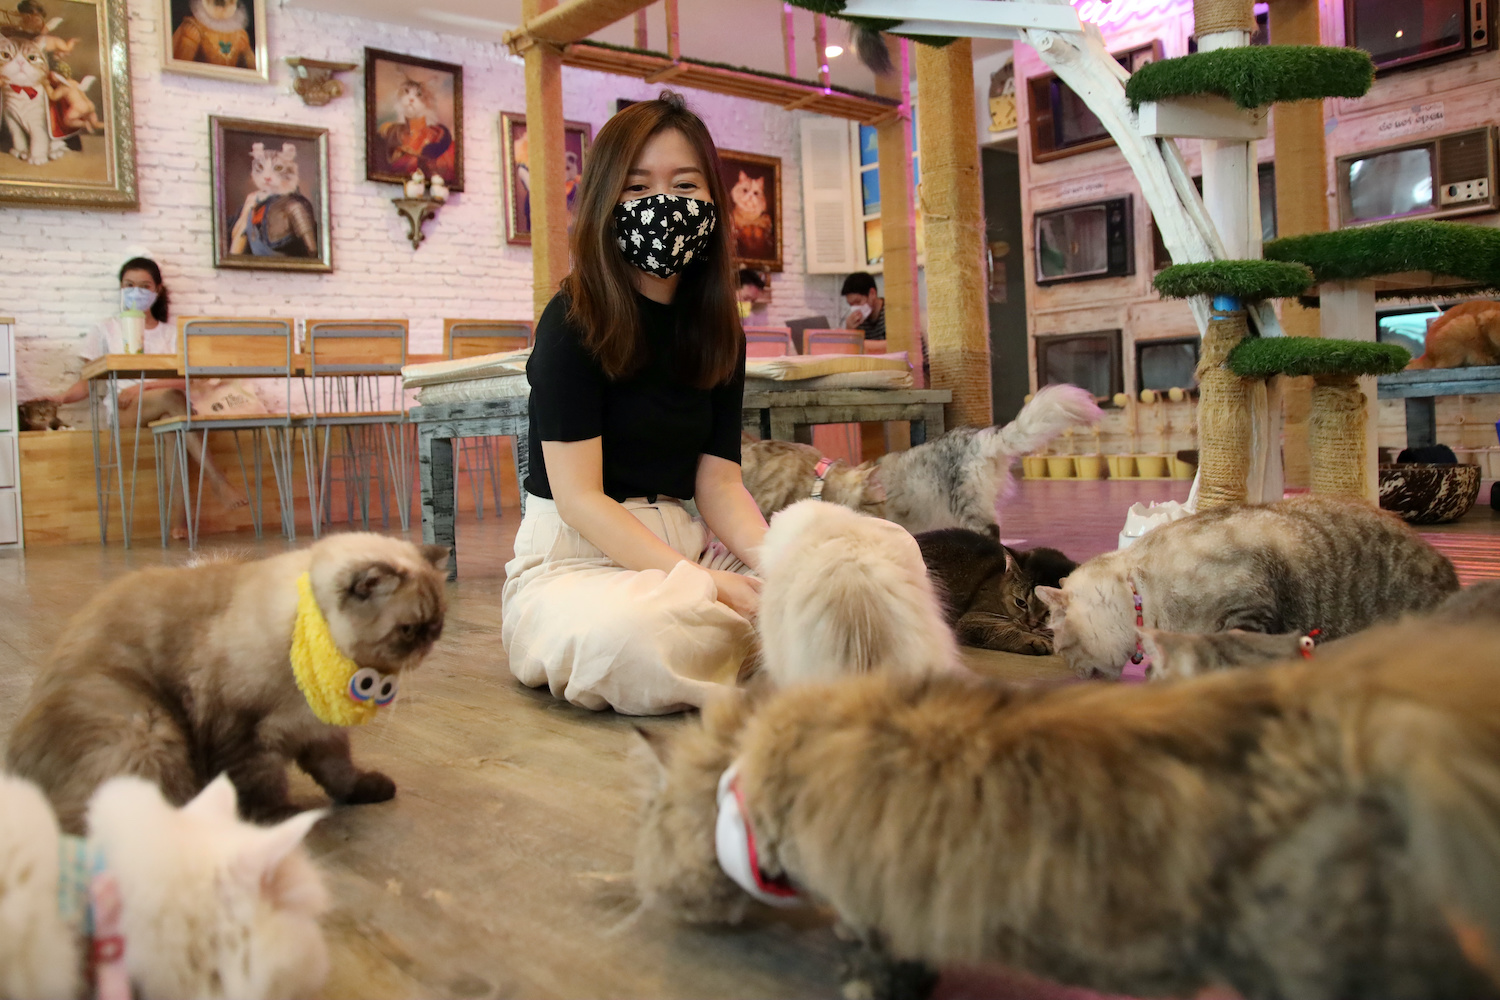 A customer plays with the cats at the Caturday Cat cafe in Ratchathewi district of Bangkok on Thursday. (Reuters Photo)